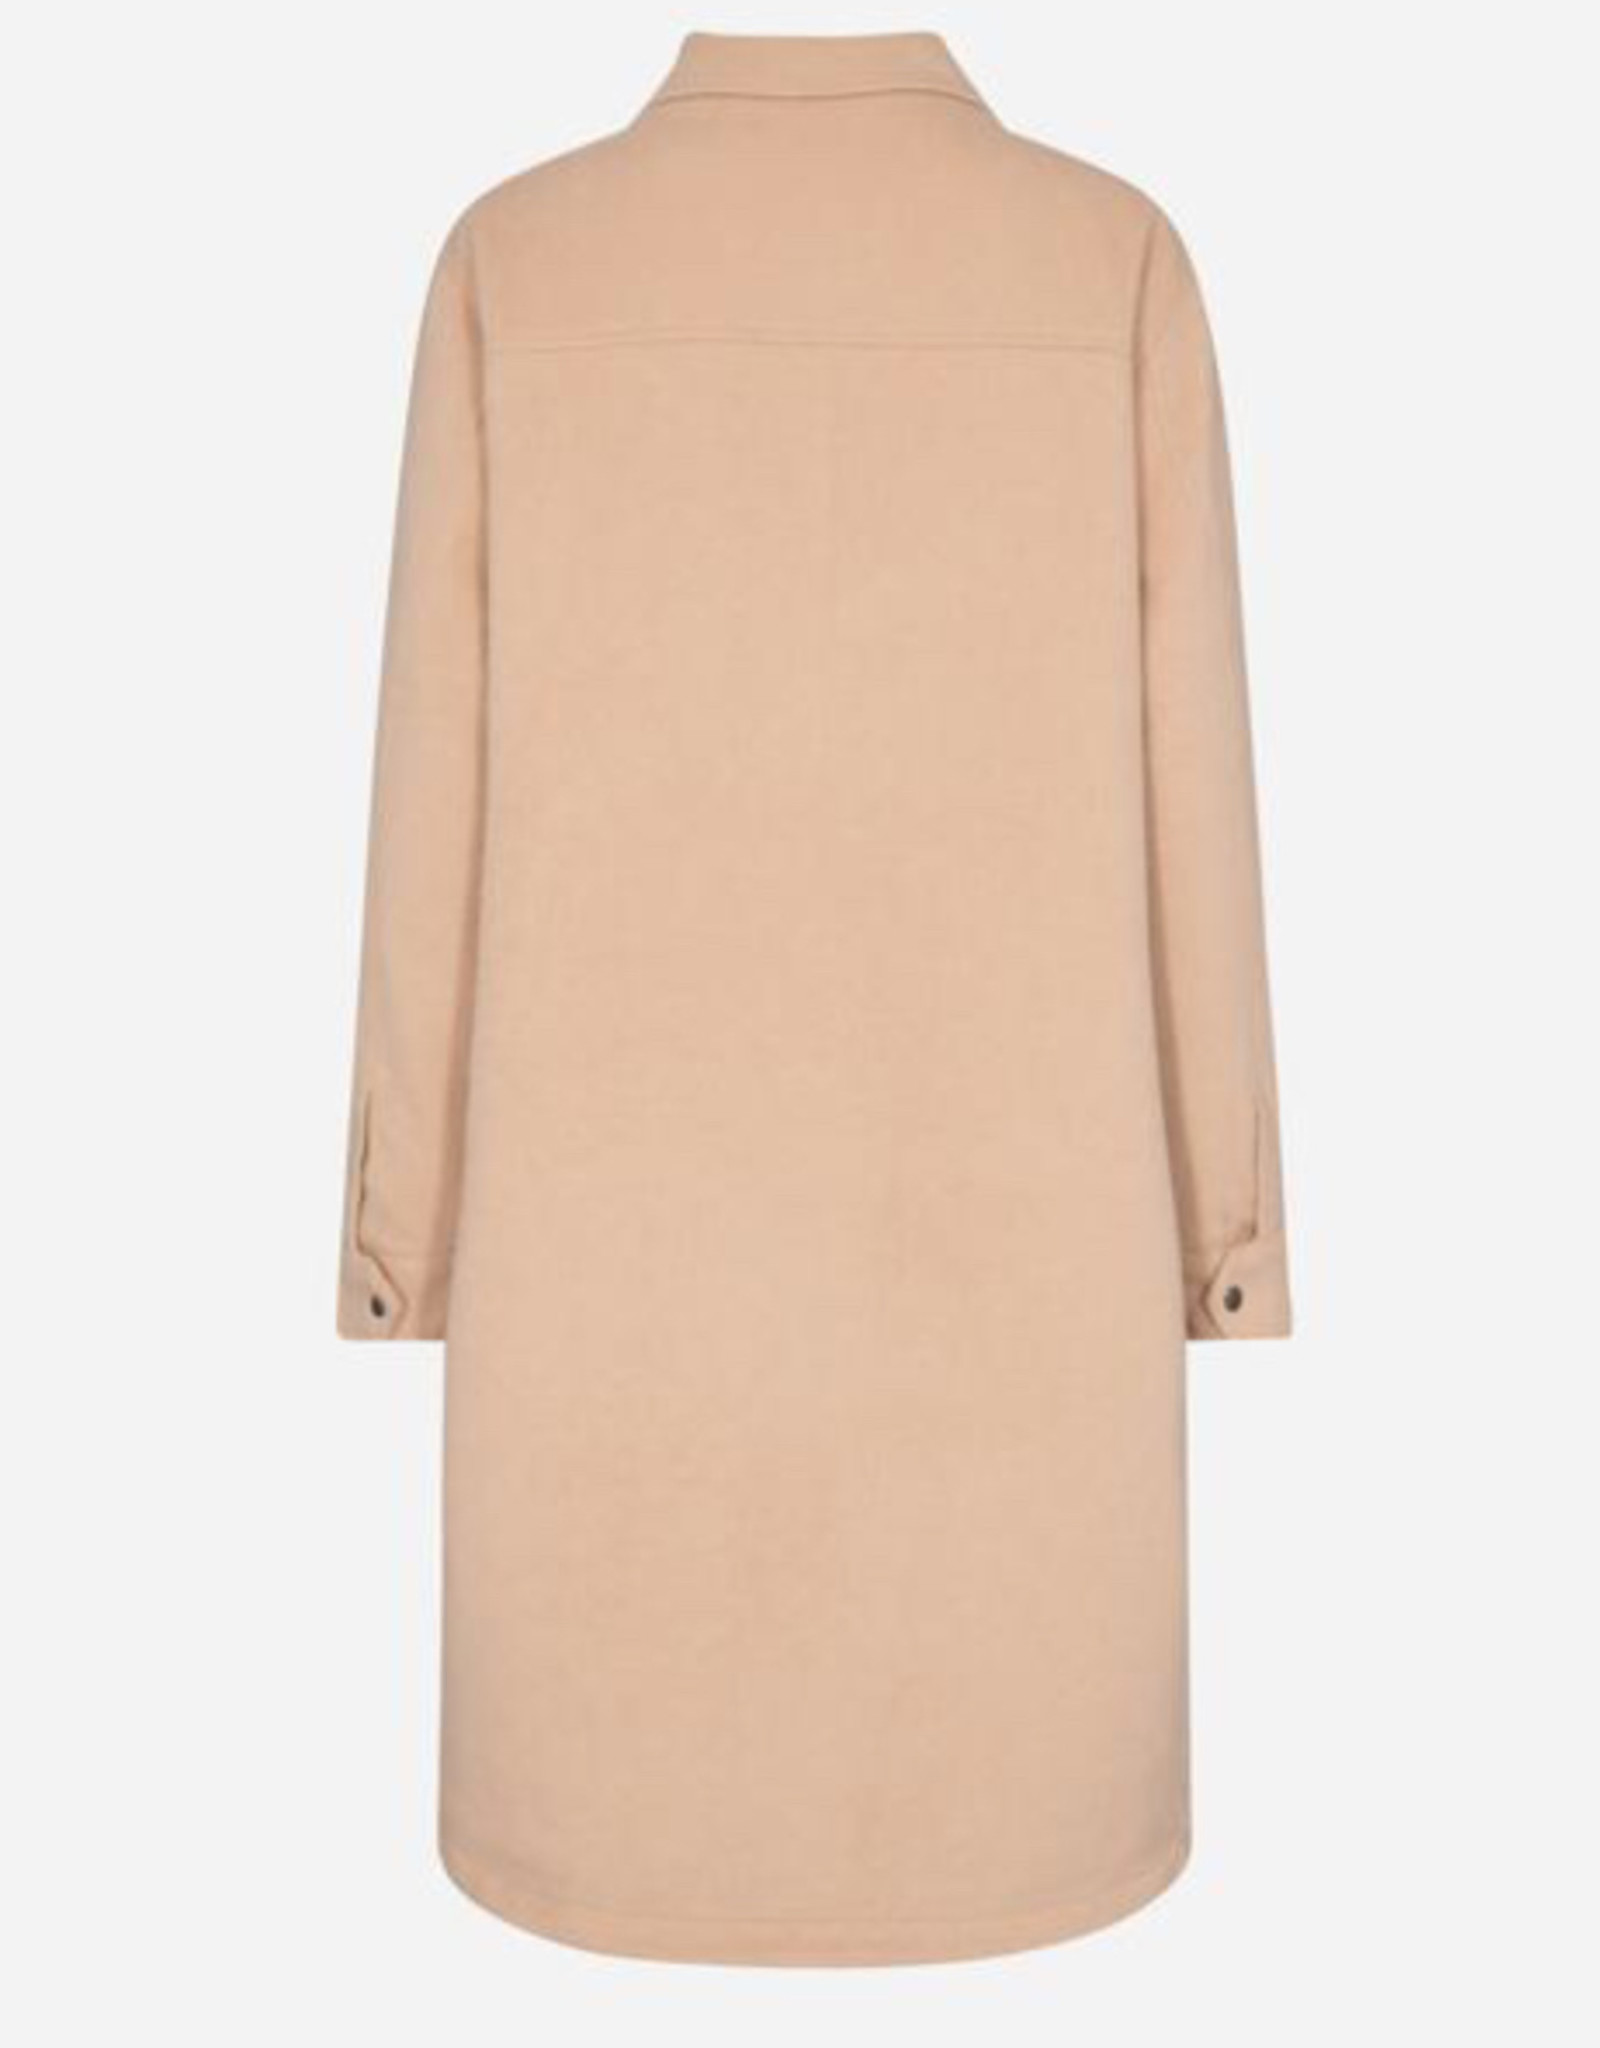 Soya Concept Soya Concept Ranila 1 Long Jacket with Snaps and Pockets